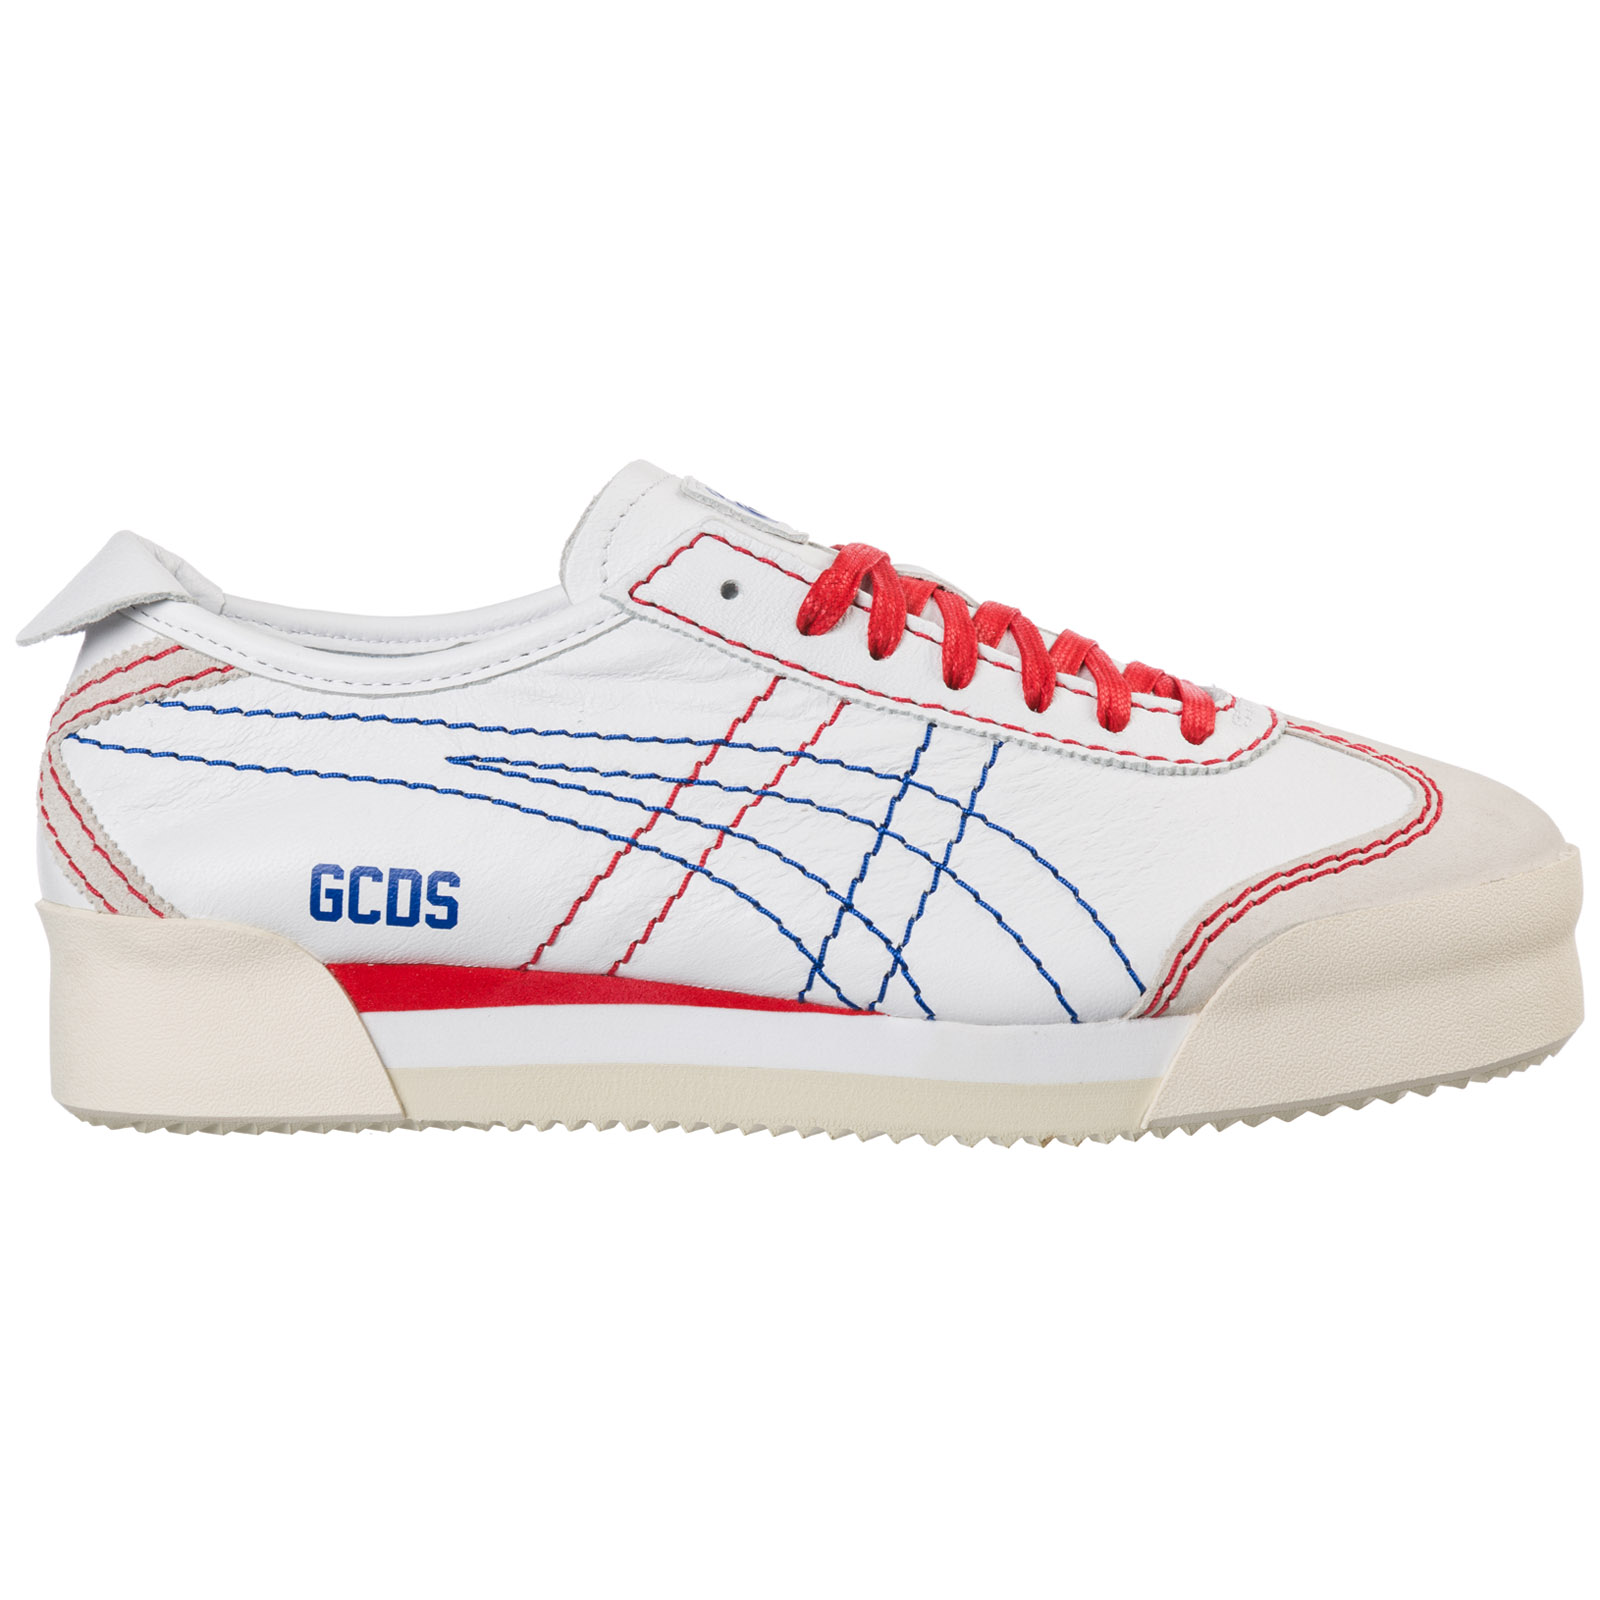 the best attitude 90a4e f5c76 Men's shoes leather trainers sneakers onitsuka tiger mexico